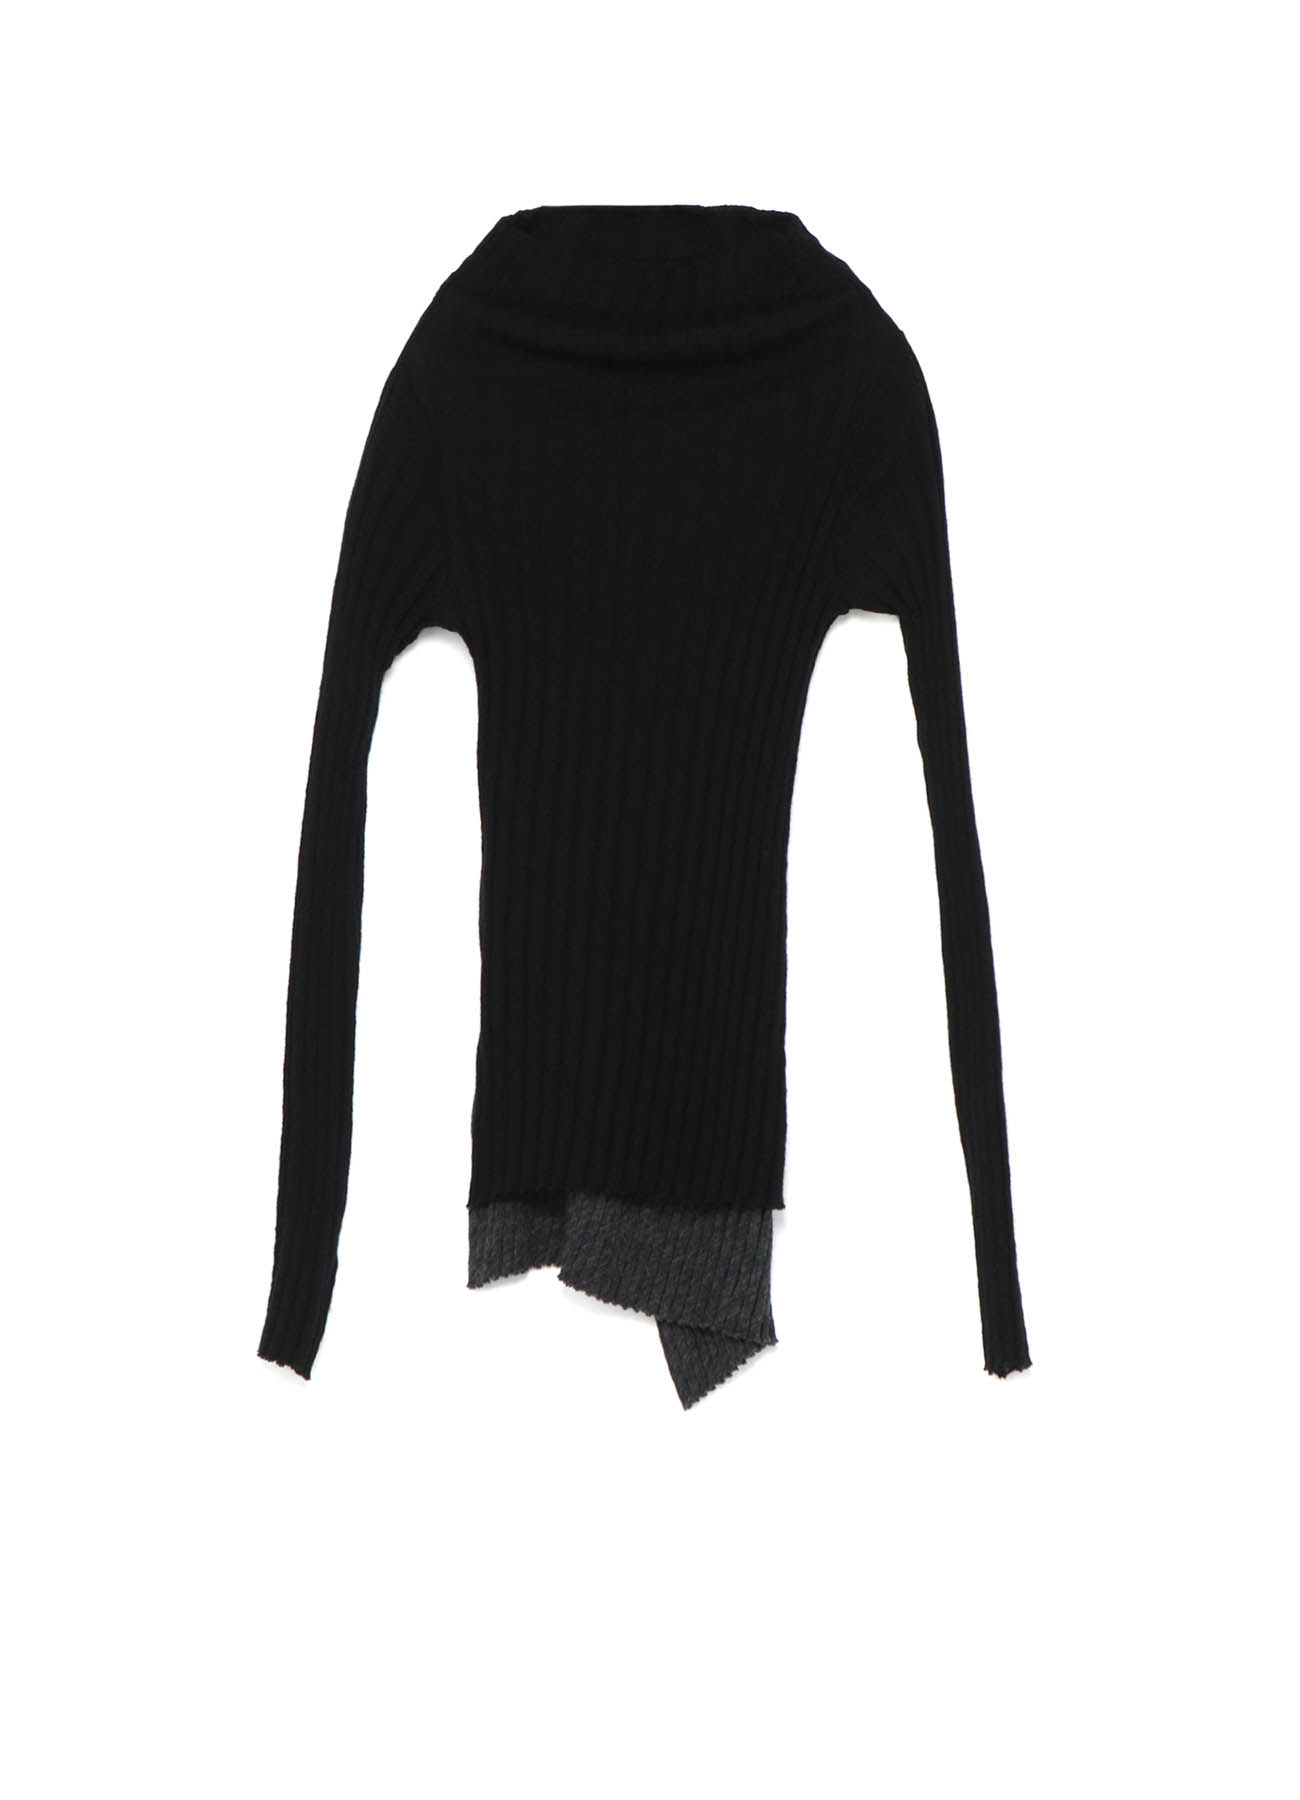 GAUZE WIDE MIX UP OFF NECK 2 LAYERS T